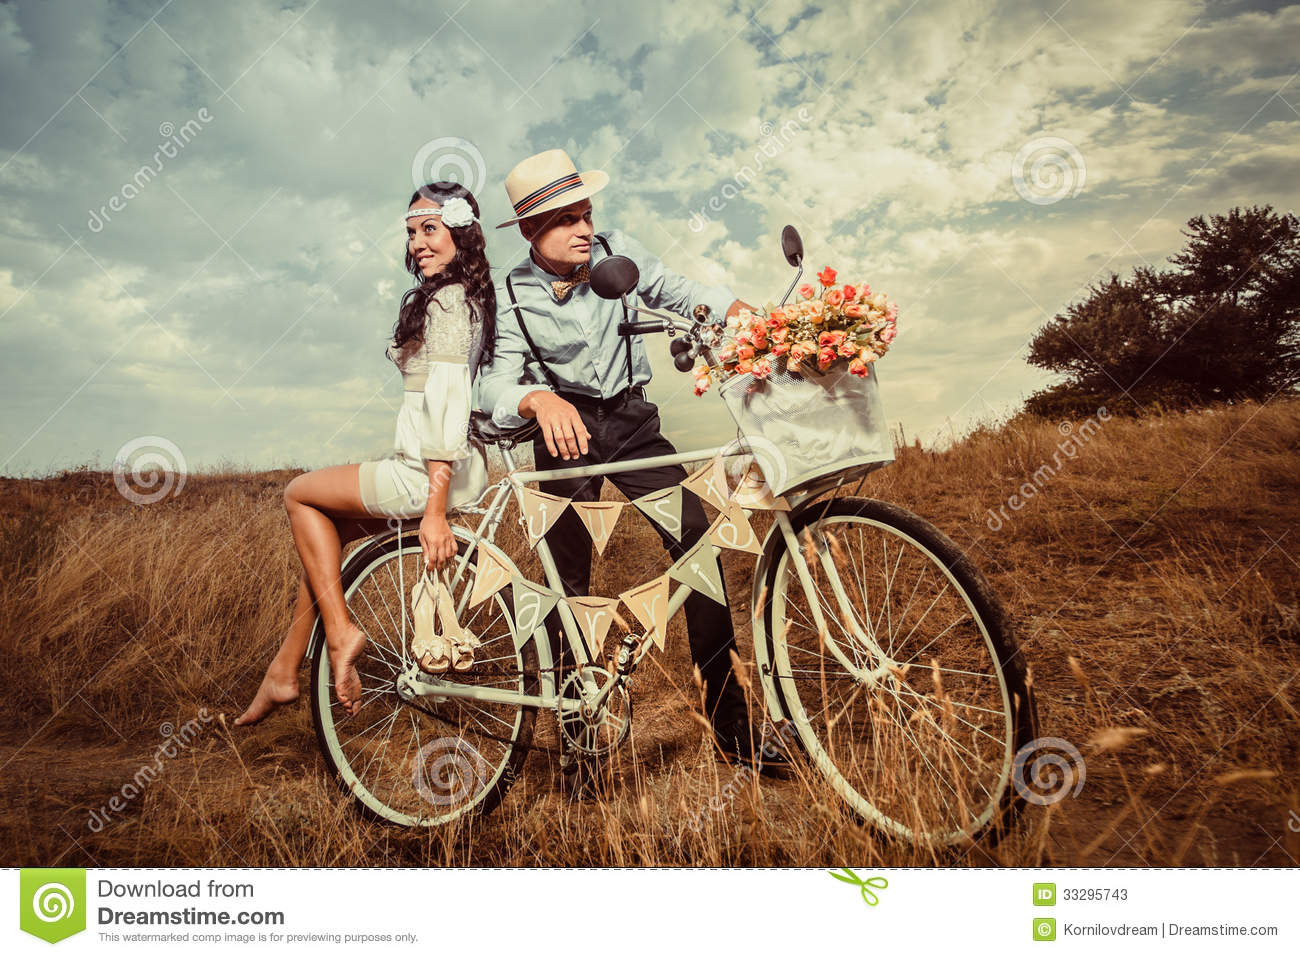 Vintage Wedding Stock Photos Image 33295743